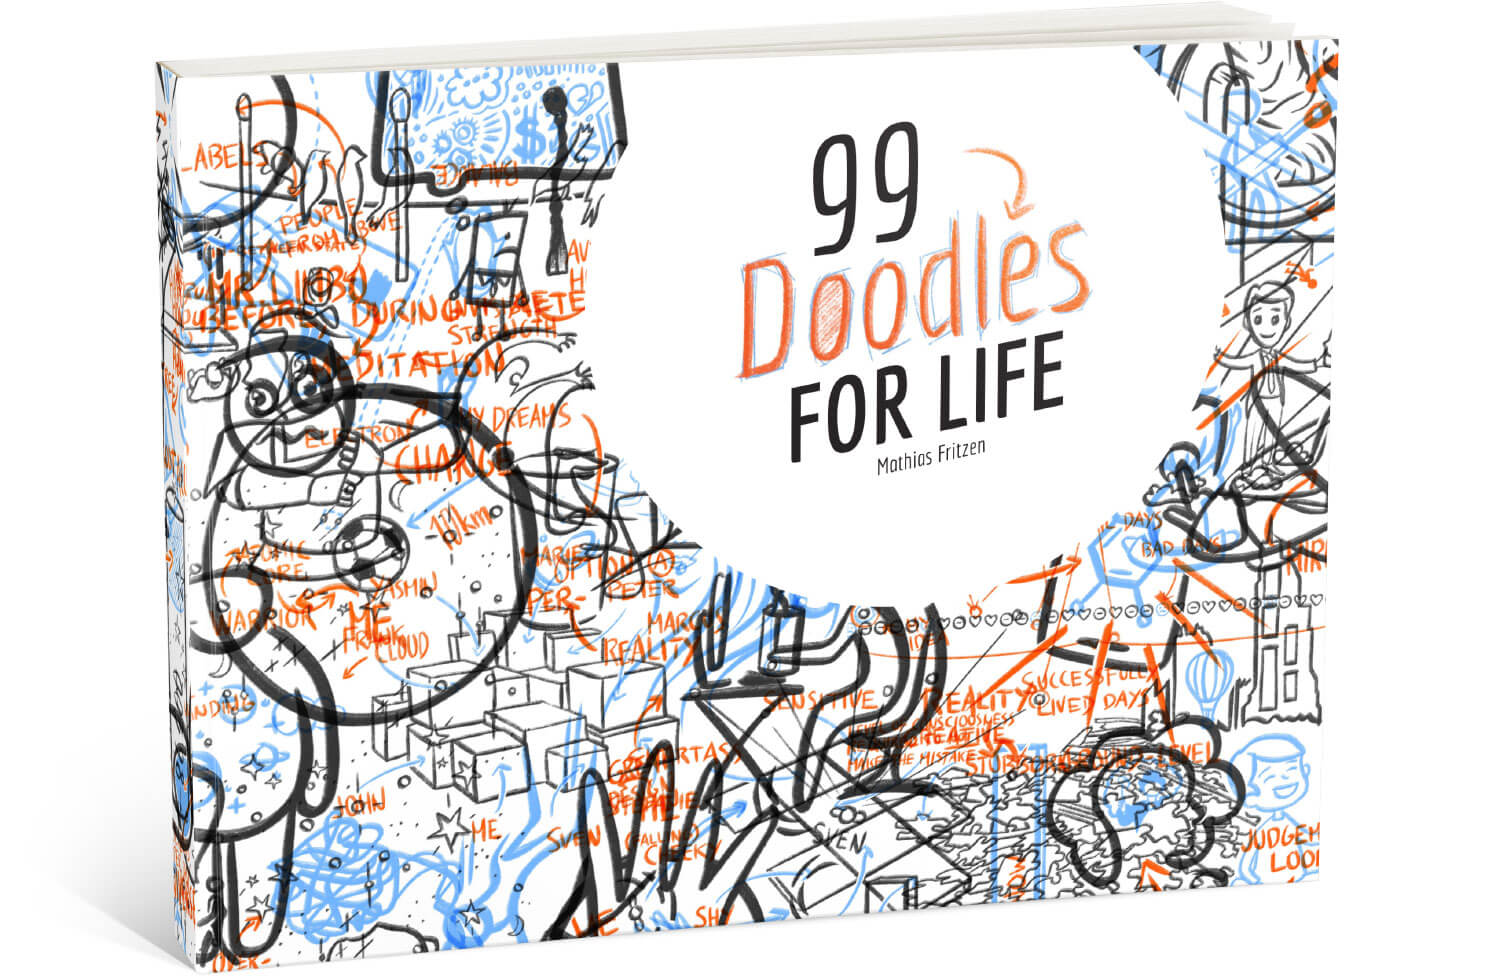 99 Doodles for Life - Mathias Fritzen